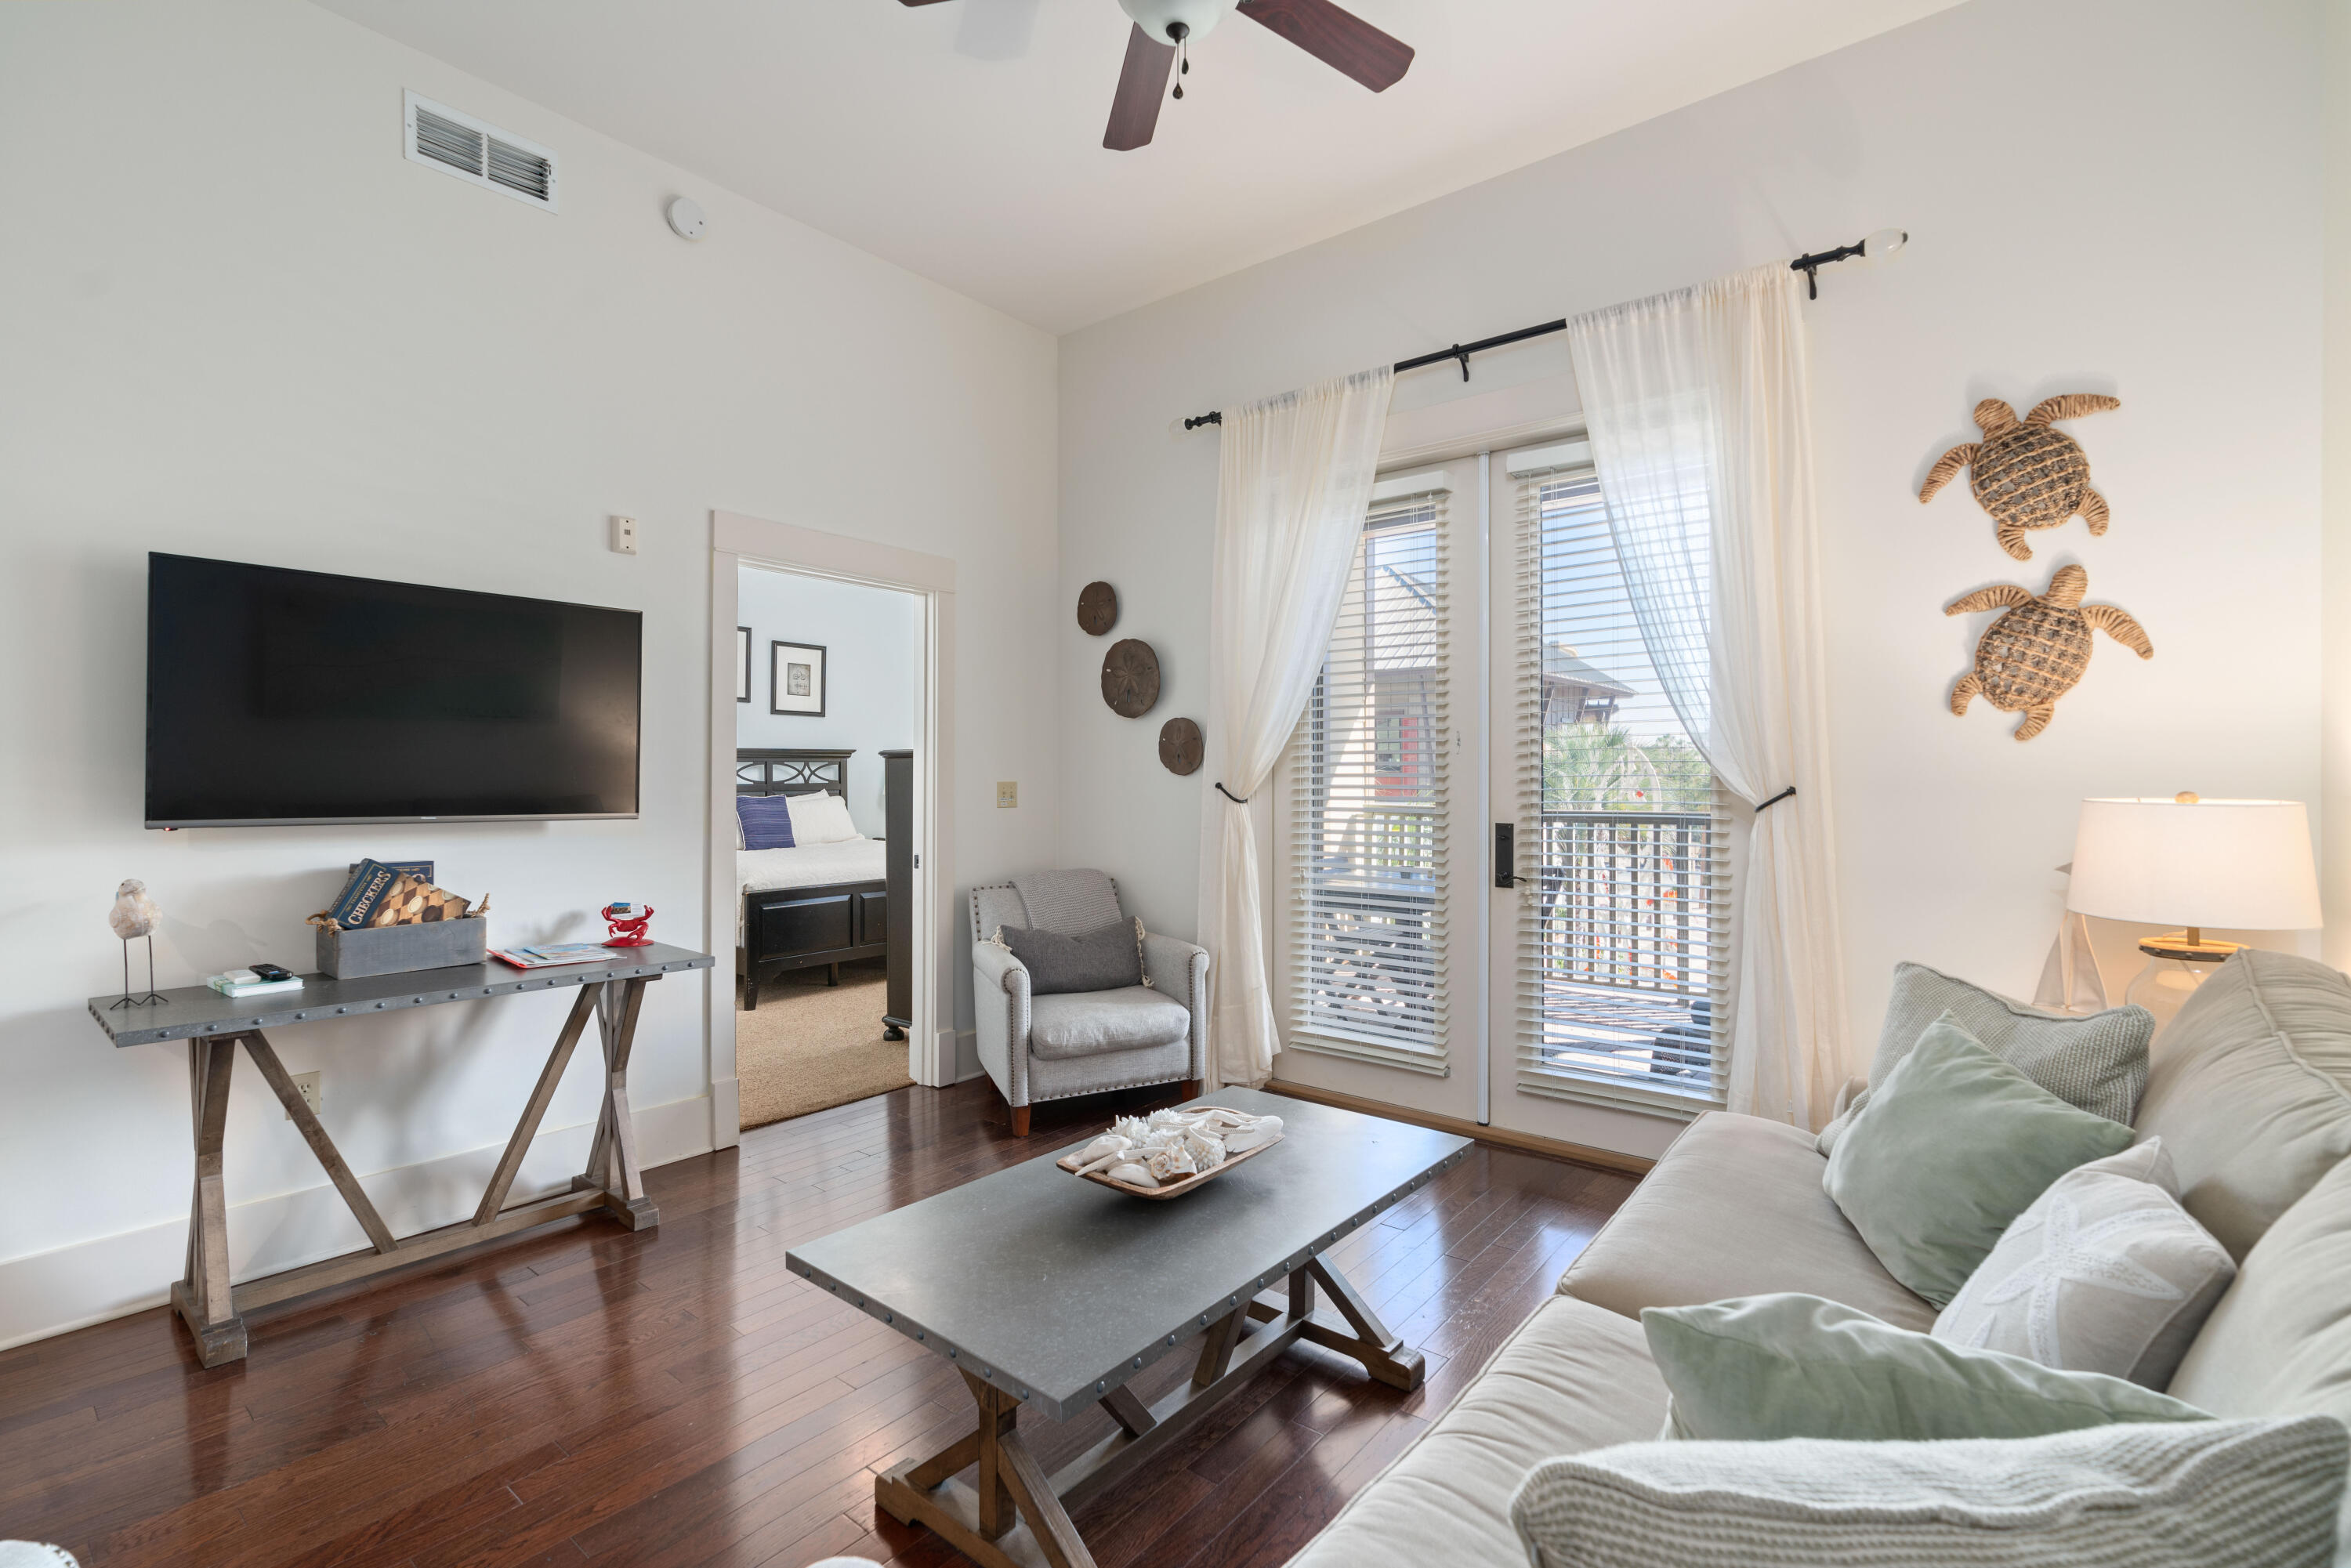 Amazing opportunity to own a vacation property located in Redfish Village in the Blue Mountain Beach area of 30A.This upscale unit features beautiful hardwood floors, granite counter tops, stainless steel appliances, spacious dual access balcony, and an assigned covered parking space. Redfish has its own private beach access, year-round shuttle service, men's and lady's cabana restrooms and showers. Redfish Village amenities are some of the finest on 30A and include an owner's only private access to the white sandy beaches, private owner's lounge with a sunlit reading room, landscaped pool area, media/theater room, fully stocked library, and children's play garden. Unit currently is a vacation rental property that comes fully furnished with some owner exclusions.